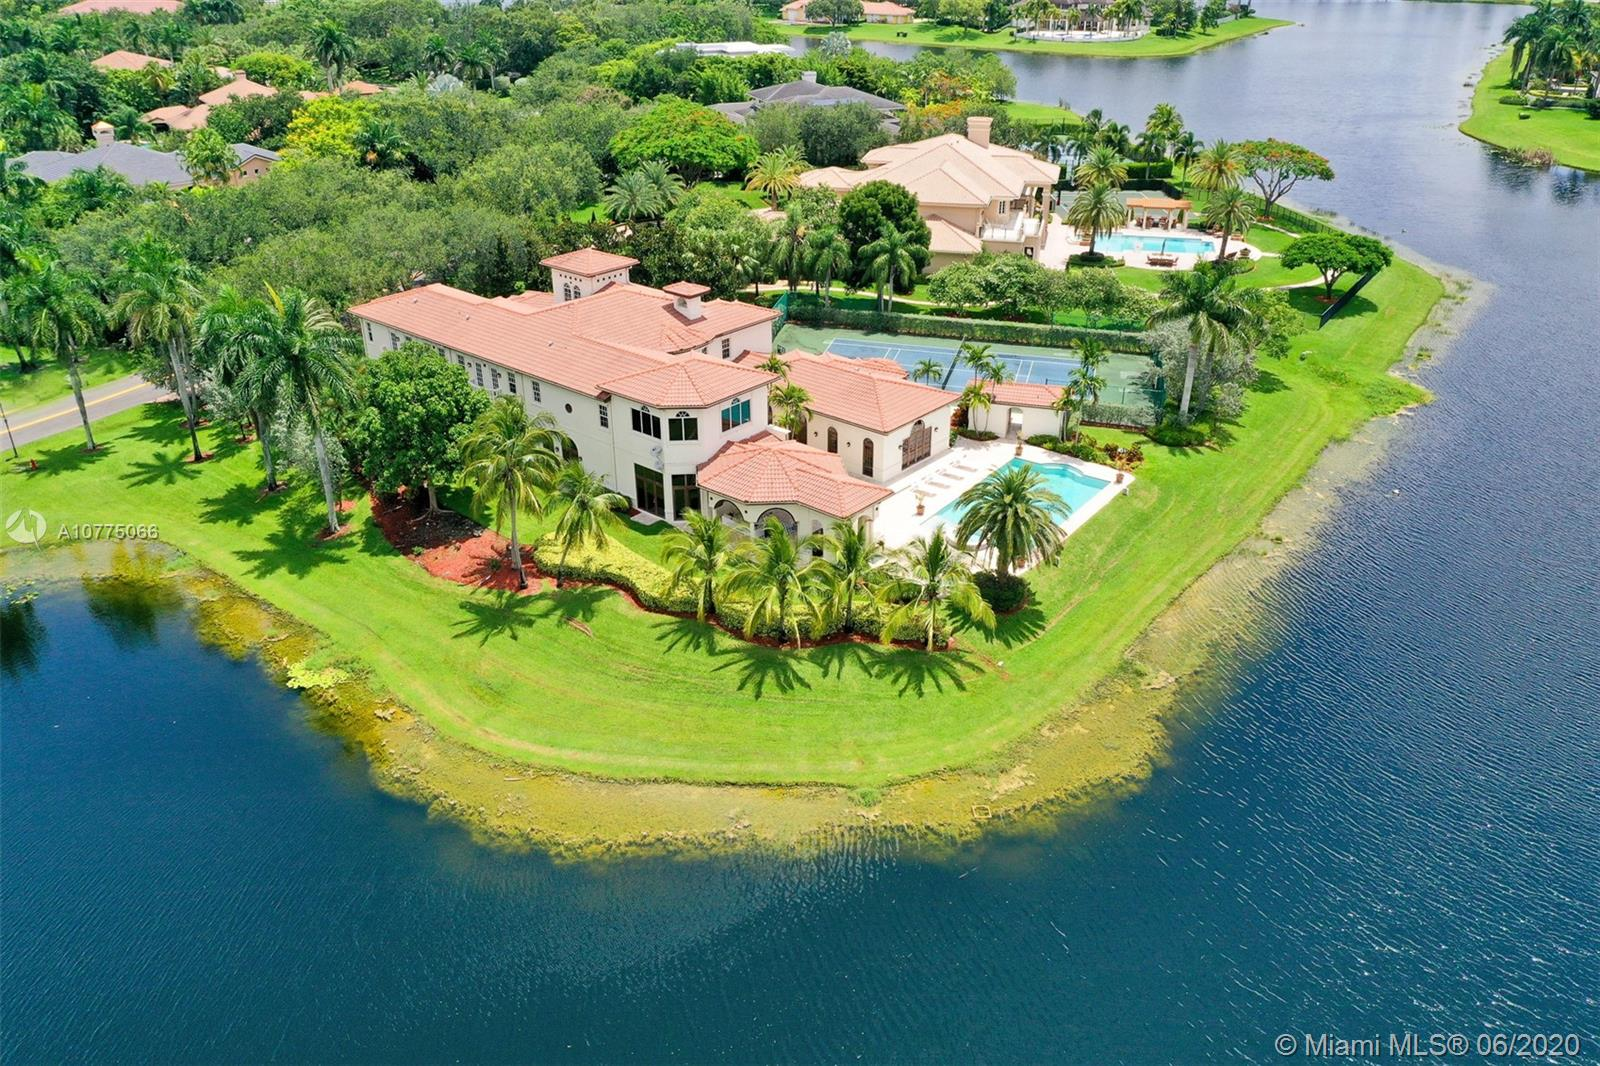 COMING SOON & NEWLY RENOVATED - YOUR DREAM ESTATE awaits you! Enjoy SOUTH FLORIDA LUXURY LIVING at its finest in this breathtaking estate that is perched high on one of the most desirable lakefront lots in Windmill Ranch Estates. This residence boasts 7 Bedrooms, 8 Baths, 2 Half baths together with expansive outdoor living areas, summer kitchen, resort style pool, TENNIS COURT & a 4 car garage. Numerous features include: ALL IMPACT GLASS, elevator, magnificent master suite on first floor, grand formal living areas, fireplace, media room, gym, game rm, amazing children's wing & guest suites, kitchen fit for a chef, butlers pantry, wine cellar & a wet bar. As soon as you experience the feel of this home along with the beautiful breeze from the backyard - you will not want to leave! MUST SEE!